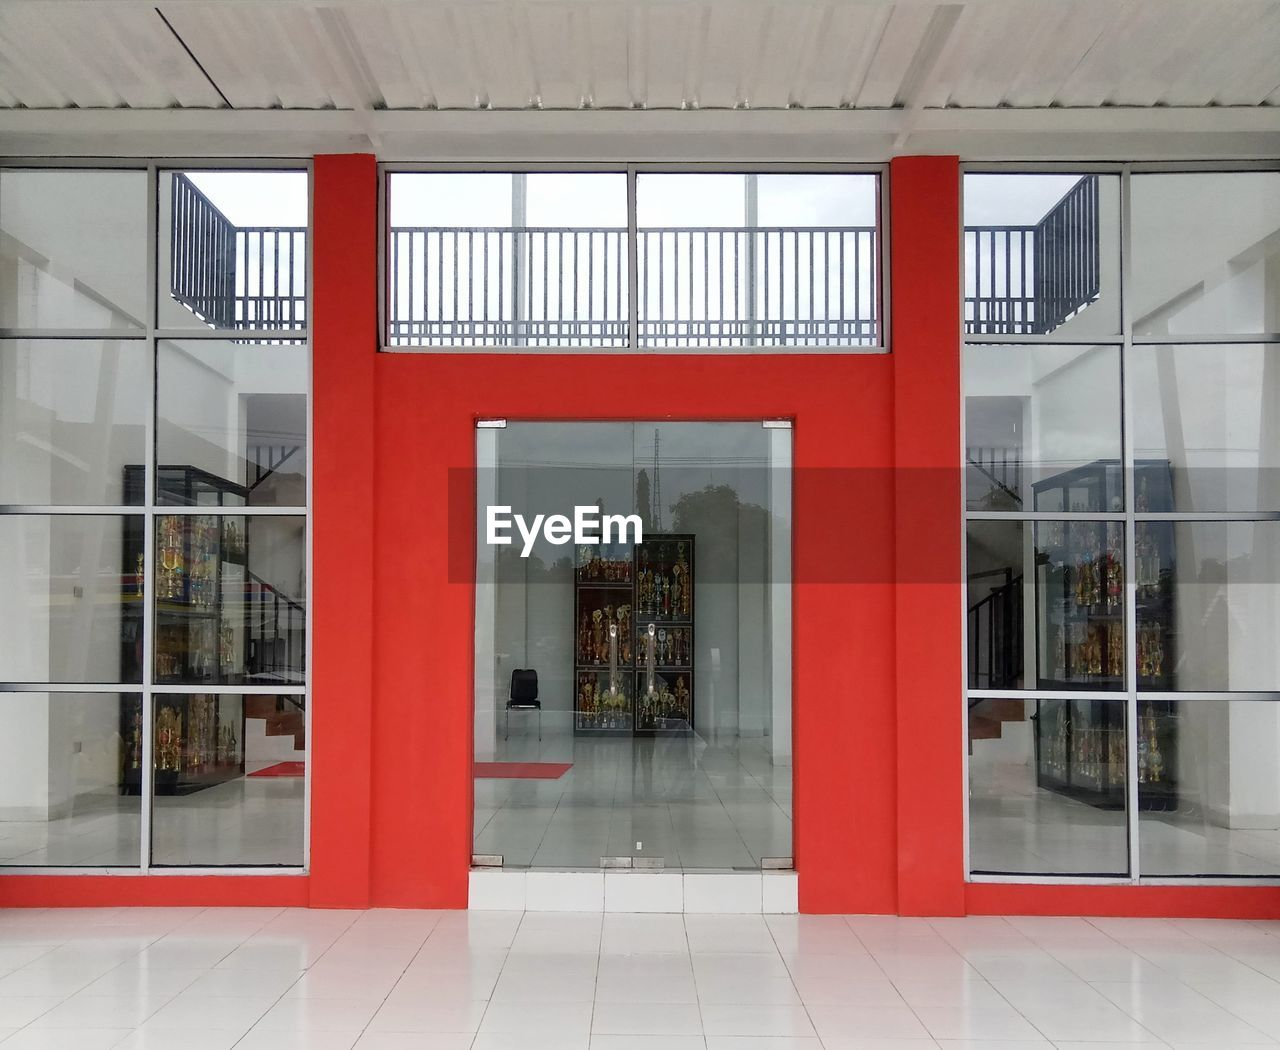 architecture, built structure, glass - material, building, red, window, entrance, indoors, transparent, reflection, door, flooring, no people, day, modern, arcade, corridor, absence, office building exterior, glass, tiled floor